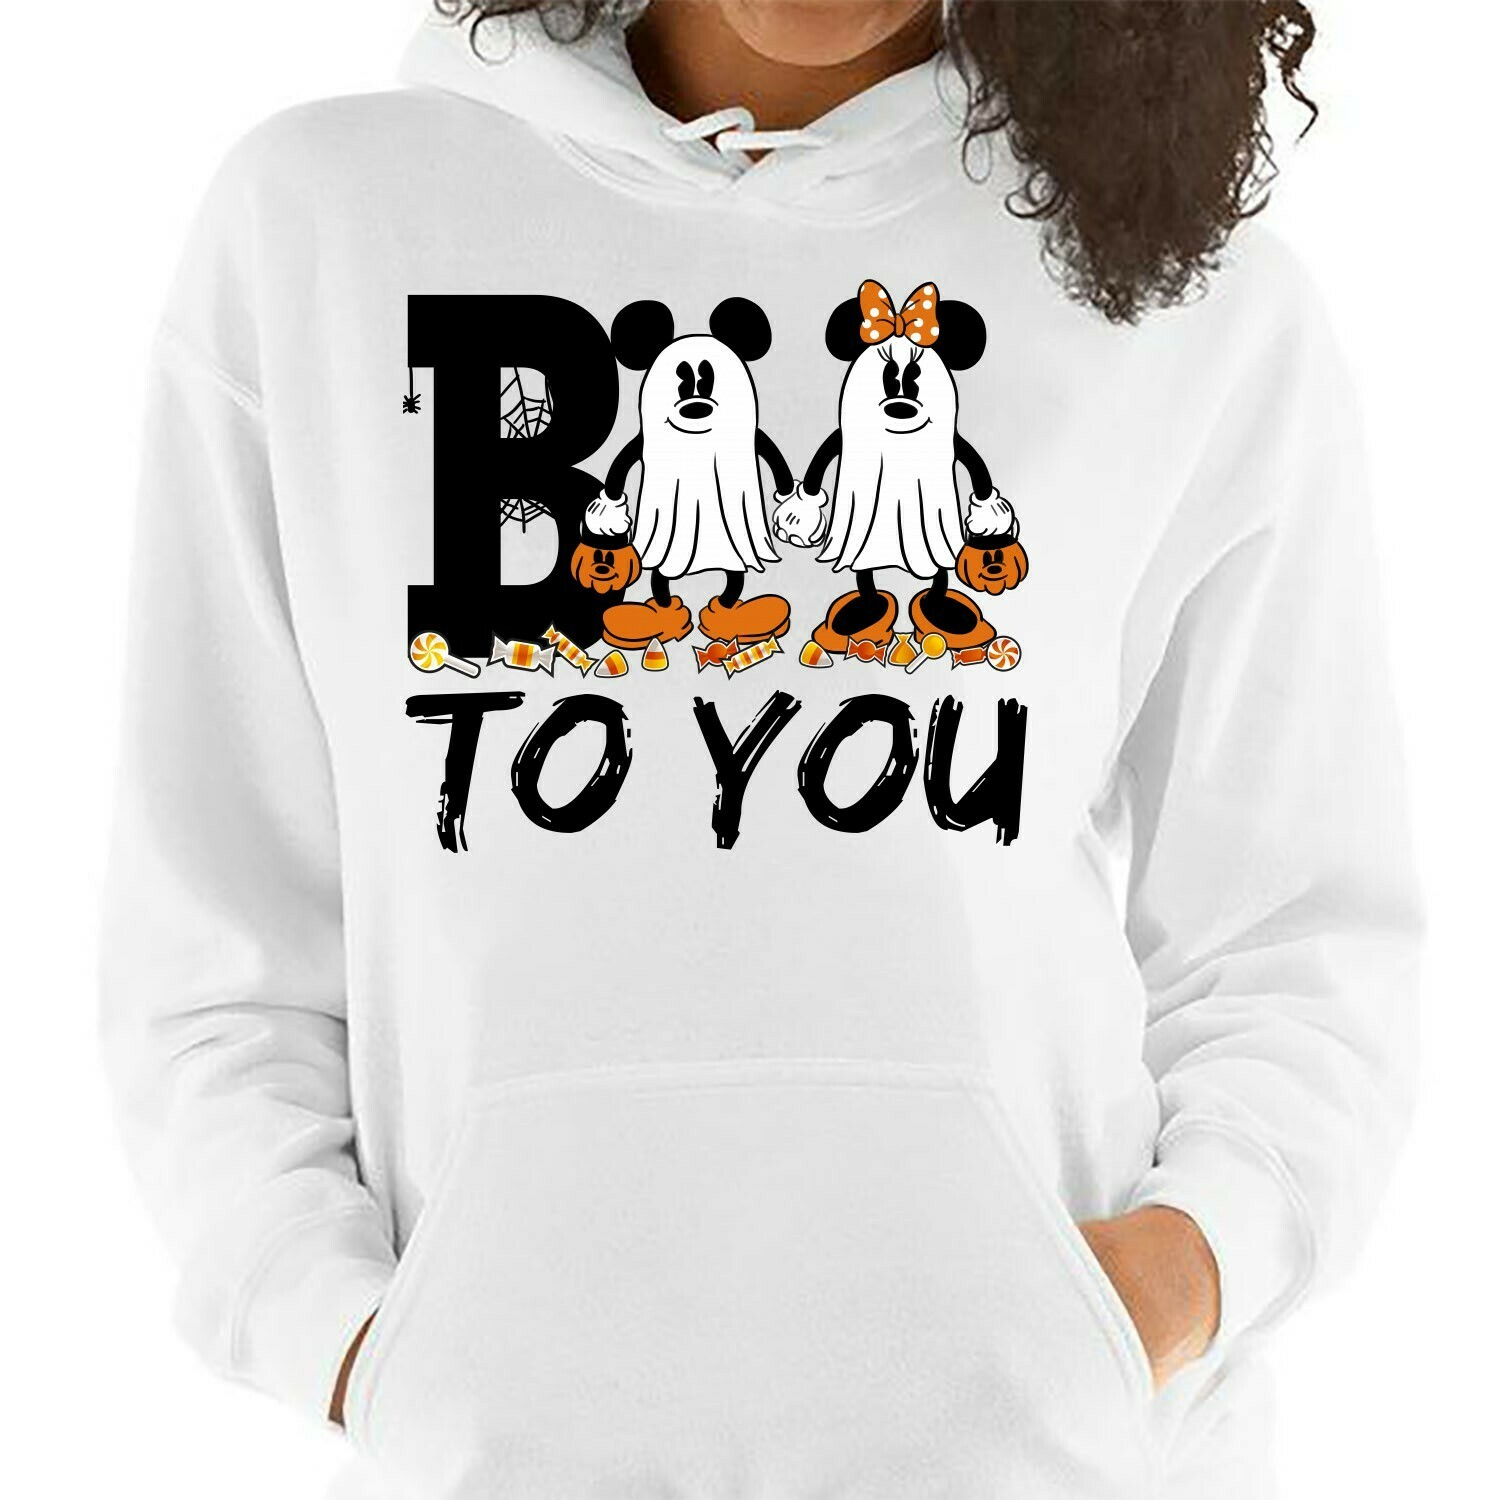 Disney Mickey & Minnie Cosplay Boo To You Trick Or Treat Halloween I'm going to Walt Disney Vacation Family Let's Go to Disney World T Shirt Long Sleeve Sweatshirt Hoodie Jolly Family Gifts